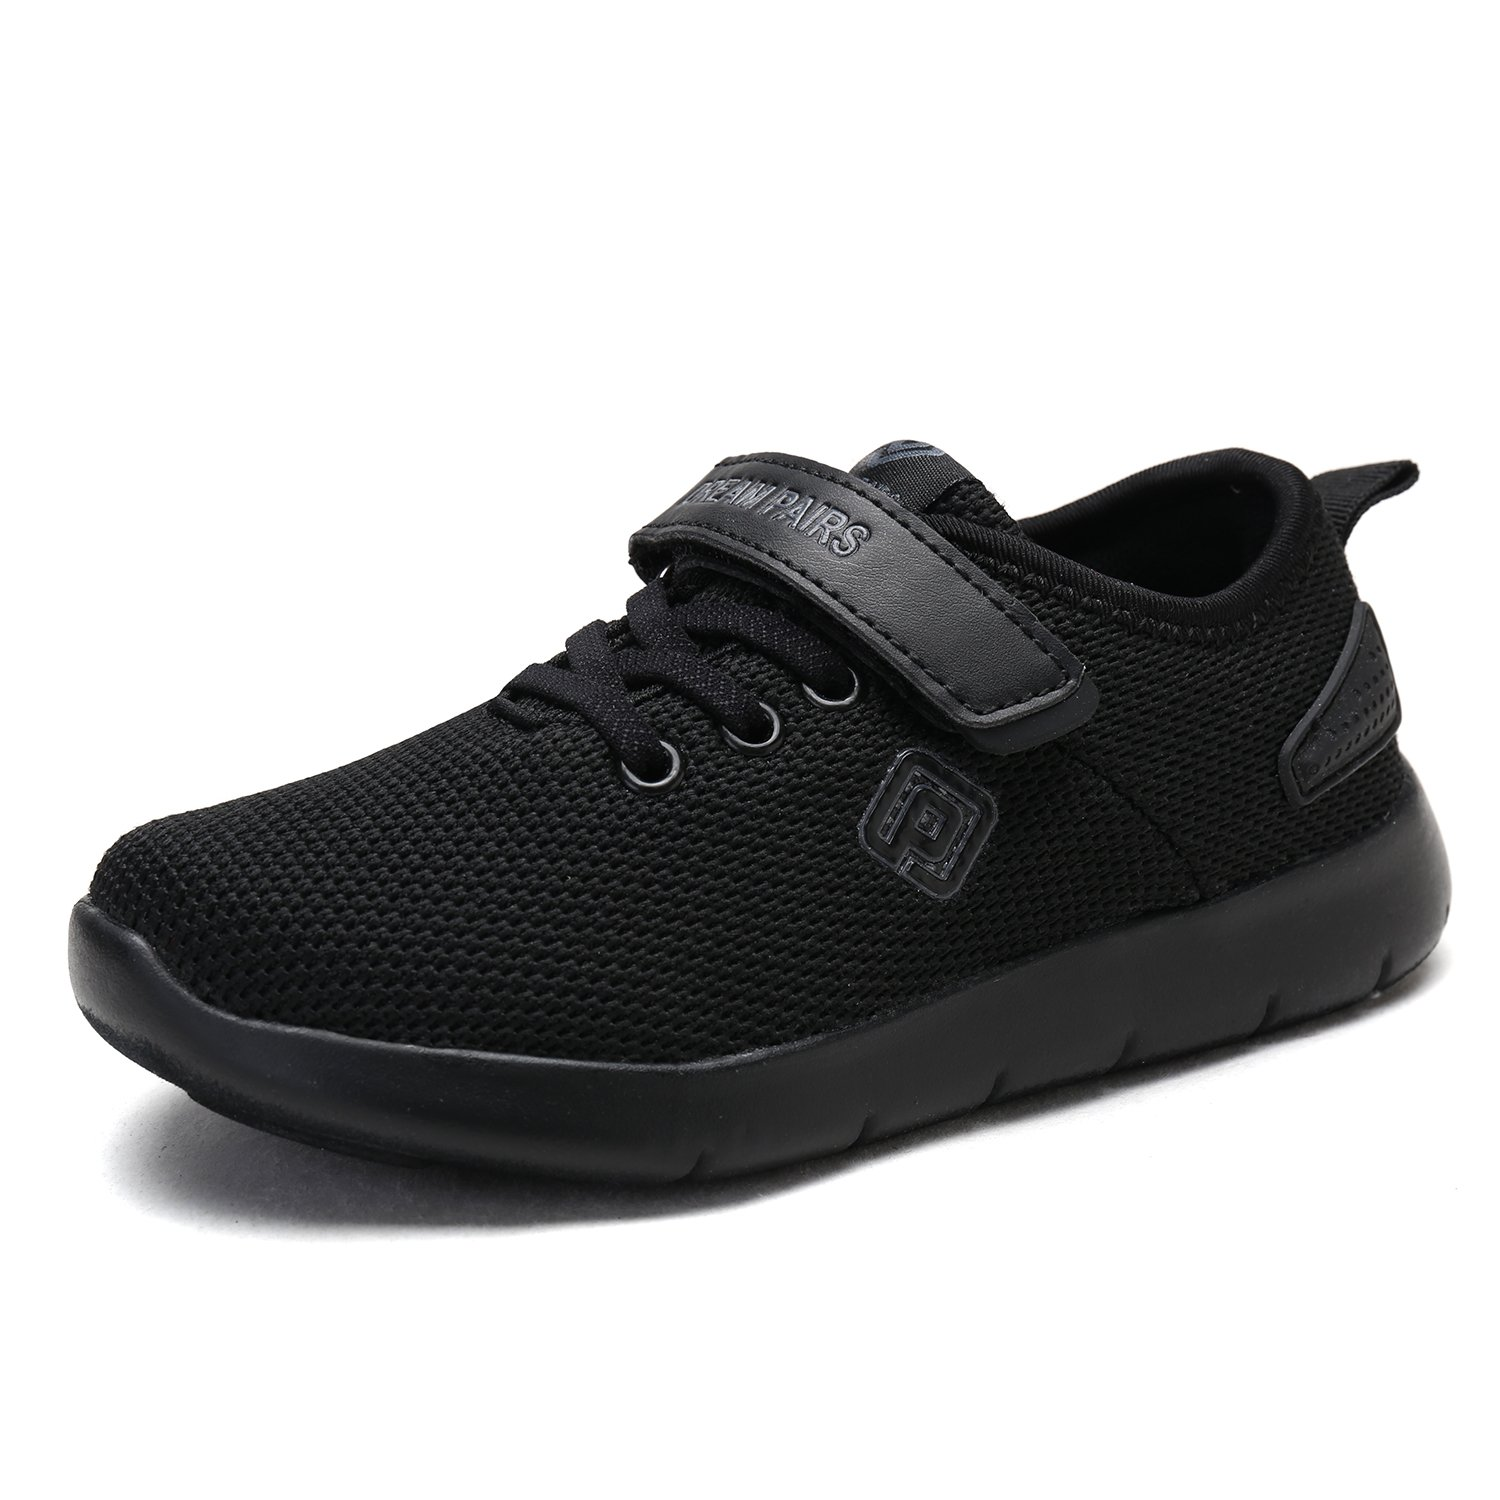 DREAM PAIRS Toddler 170945_K All Black Fashion Running Shoes Sneakers Size 7 M US Toddler